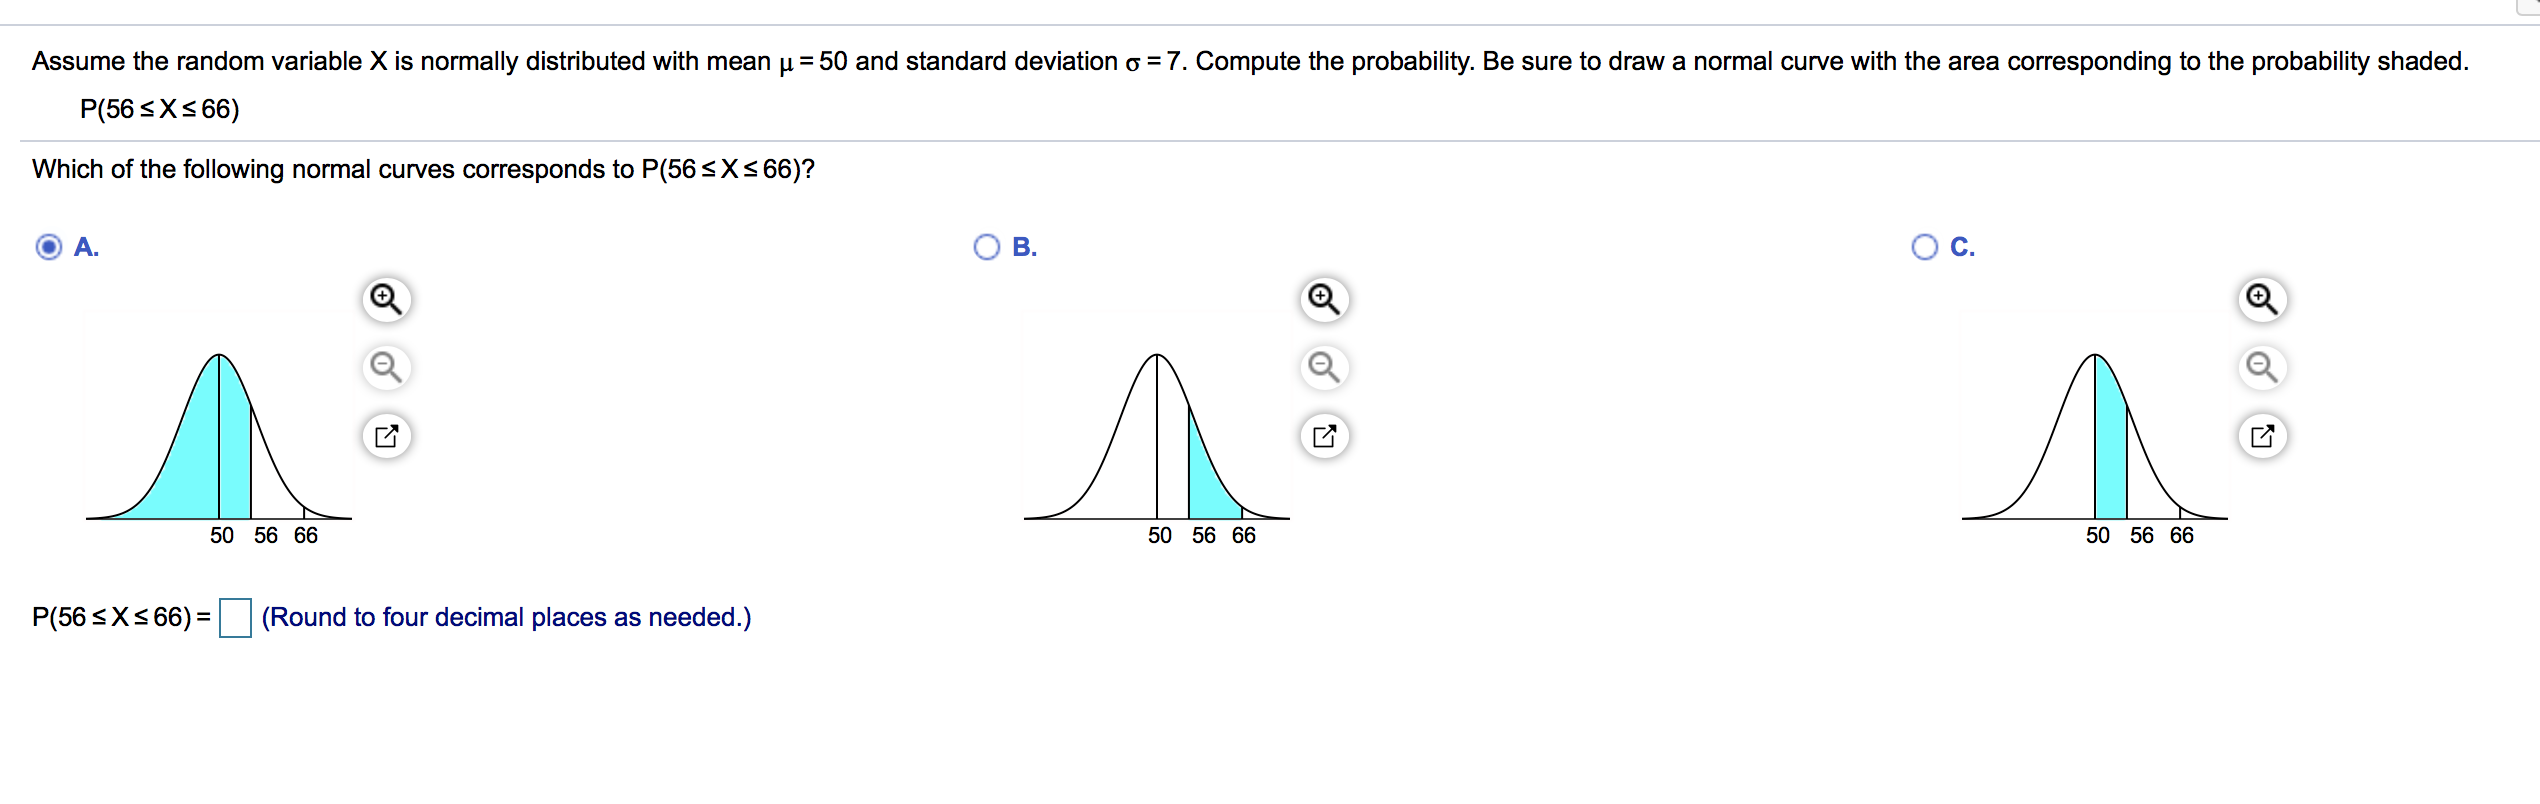 Assume the random variable X is normally distributed with mean u 50 and standard deviation o = 7. Compute the probability. Be sure to draw a normal curve with the area corresponding to the probability shaded. P(56 X66) Which of the following normal curves corresponds to P(56 SX366)? Ос. A. В. Л Л 50 56 66 50 56 66 50 56 66 (Round to four decimal places as needed.) P(56 Xs66)